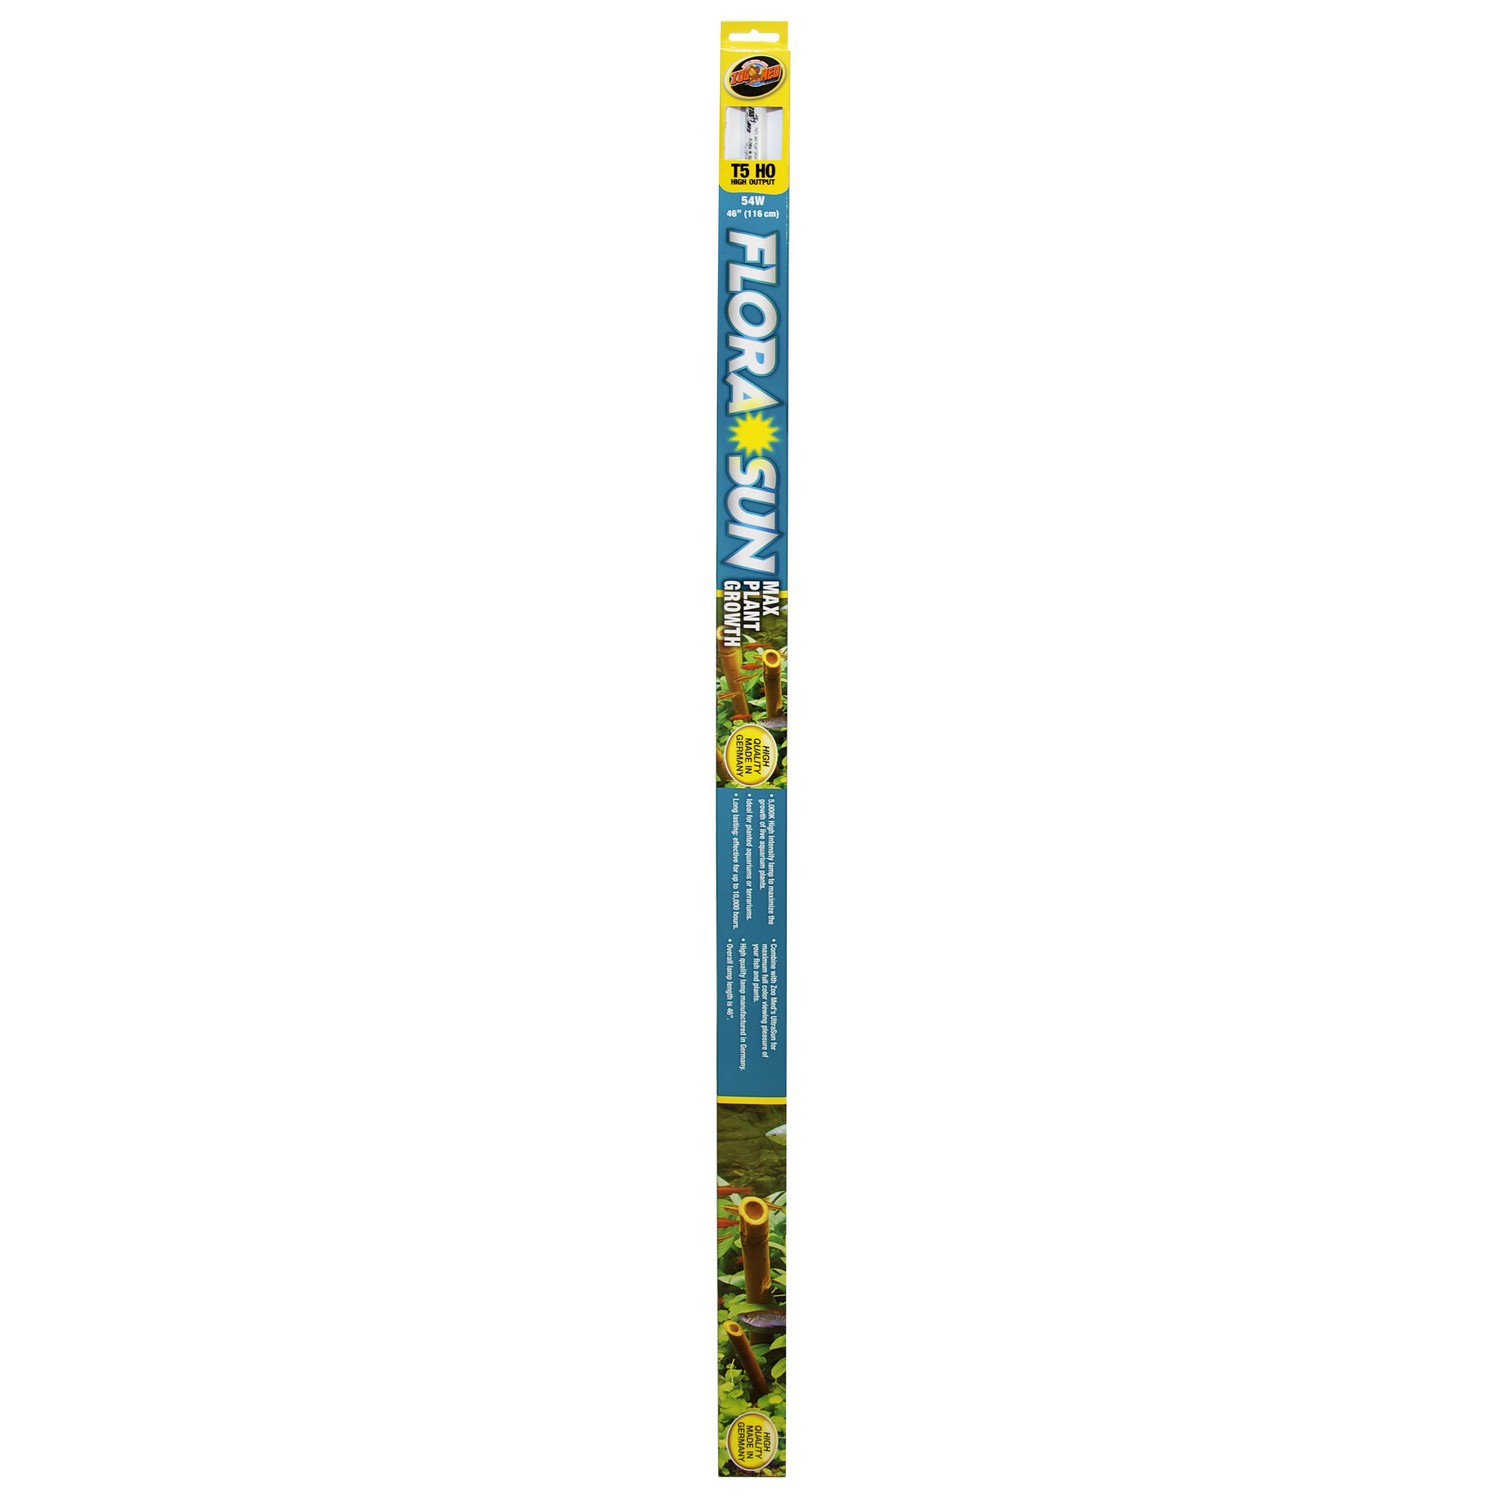 Zoo Med T-5 HO Flora Sun Max Plant Growth Fluorescent Bulb